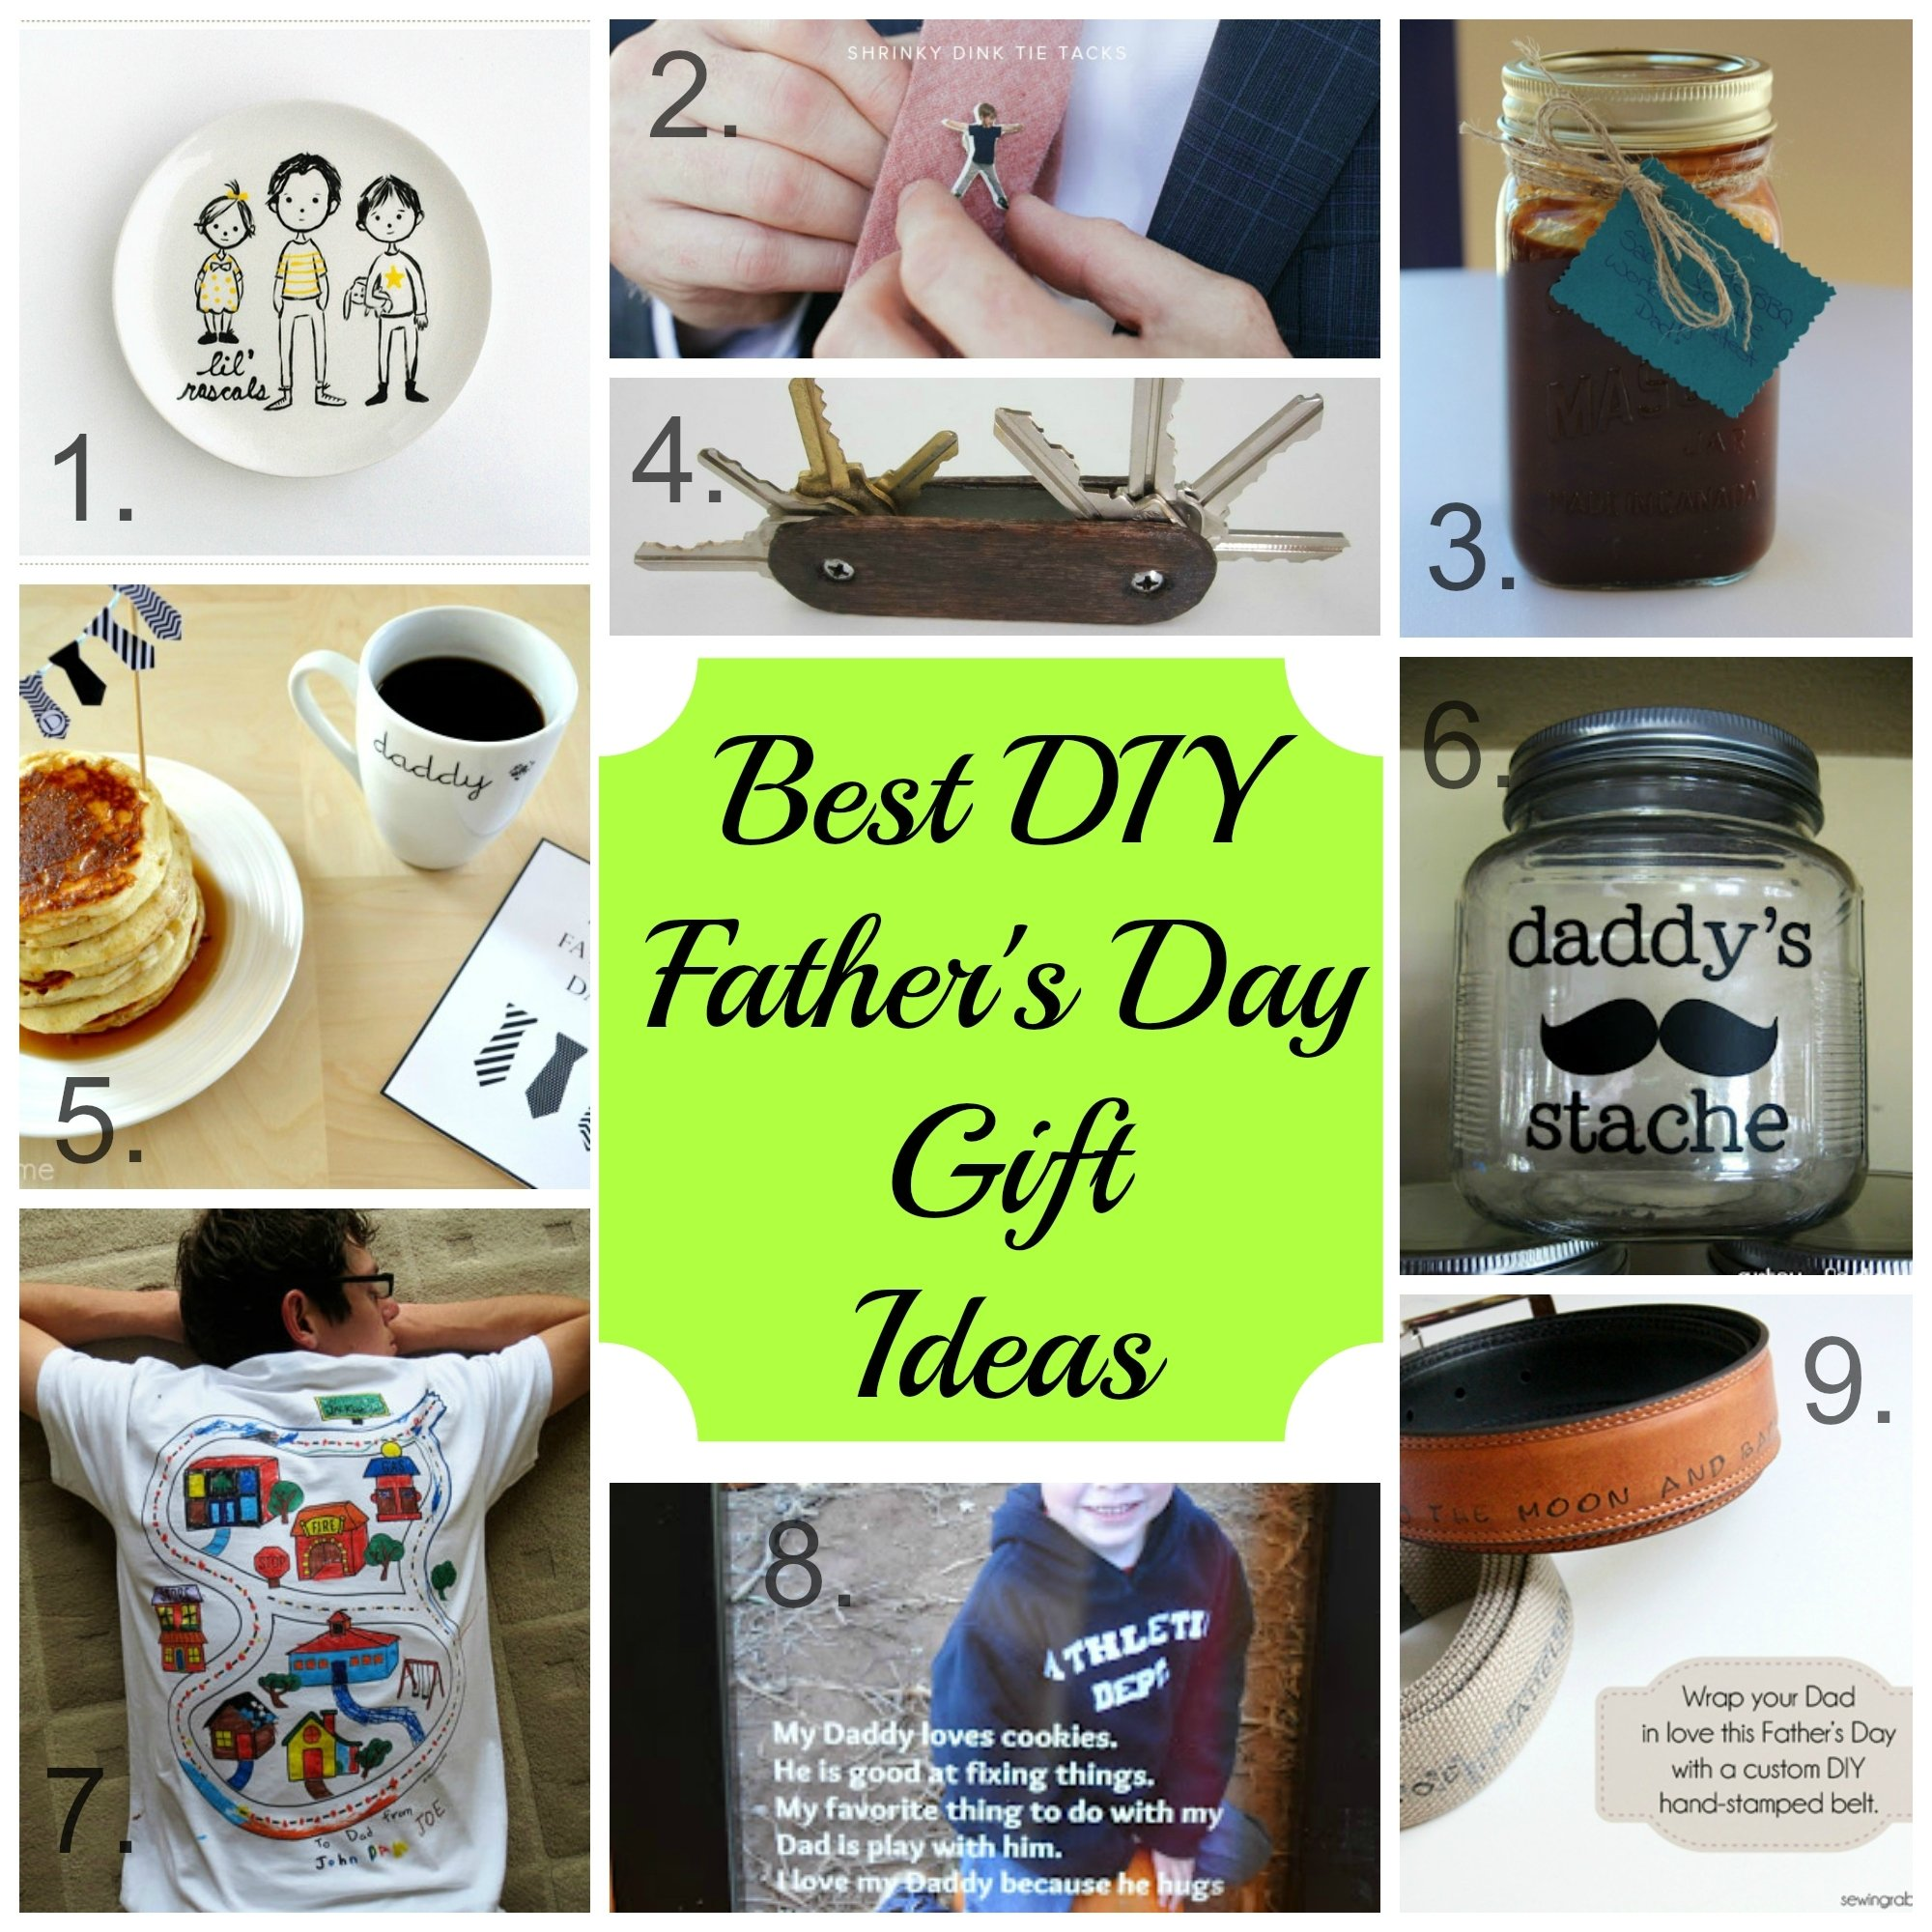 10 Great Gift Ideas For Fathers Day best diy fathers day gift ideas adventures of an orthodox mom 4 2020